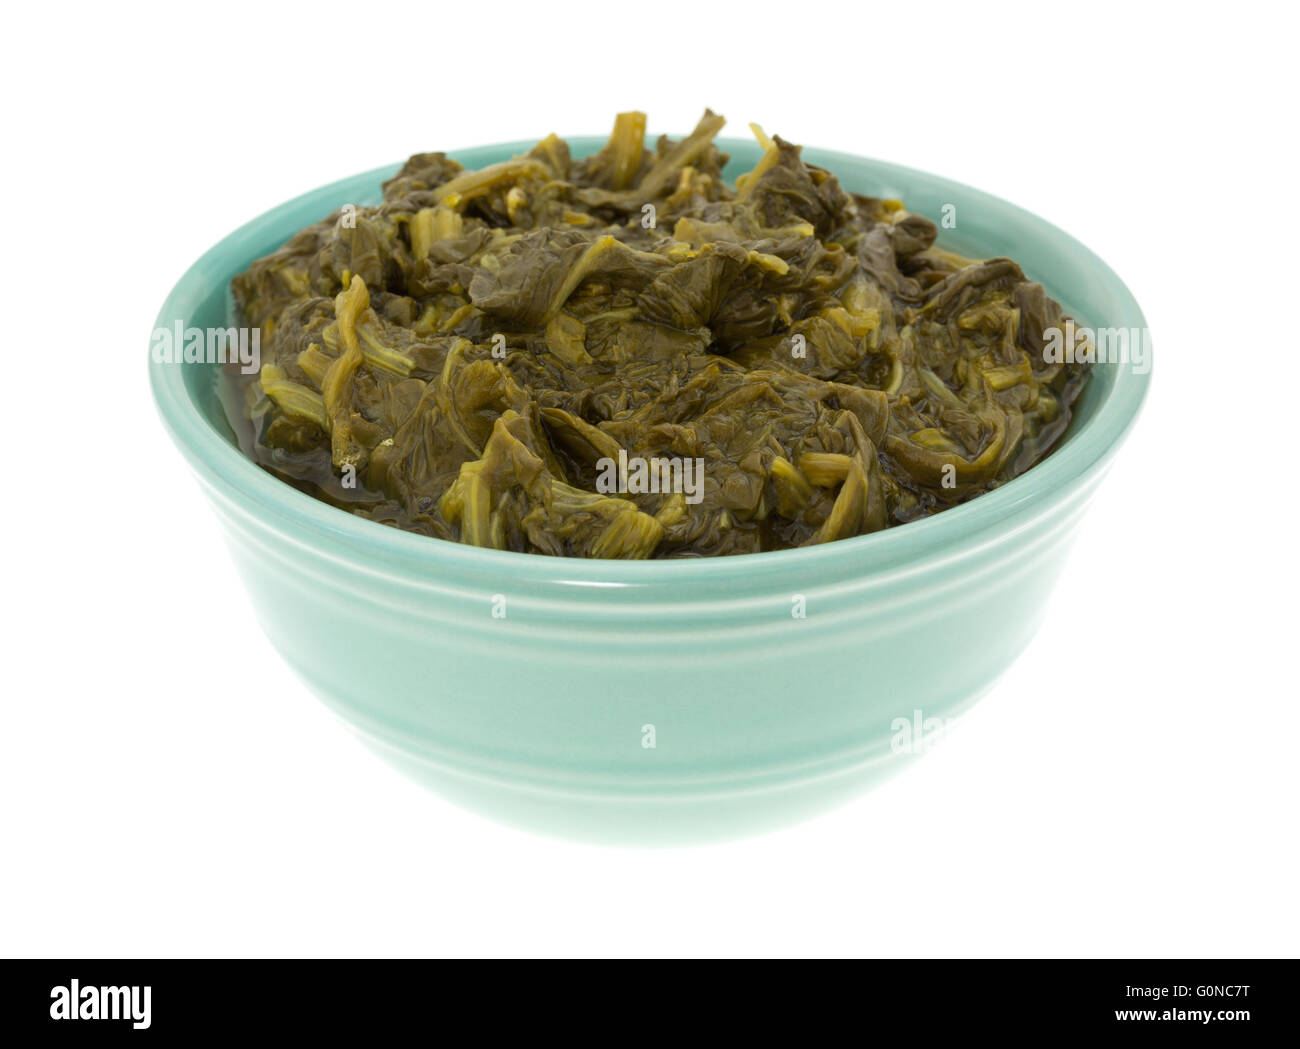 How to Use Your Canned Spinach How to Use Your Canned Spinach new photo